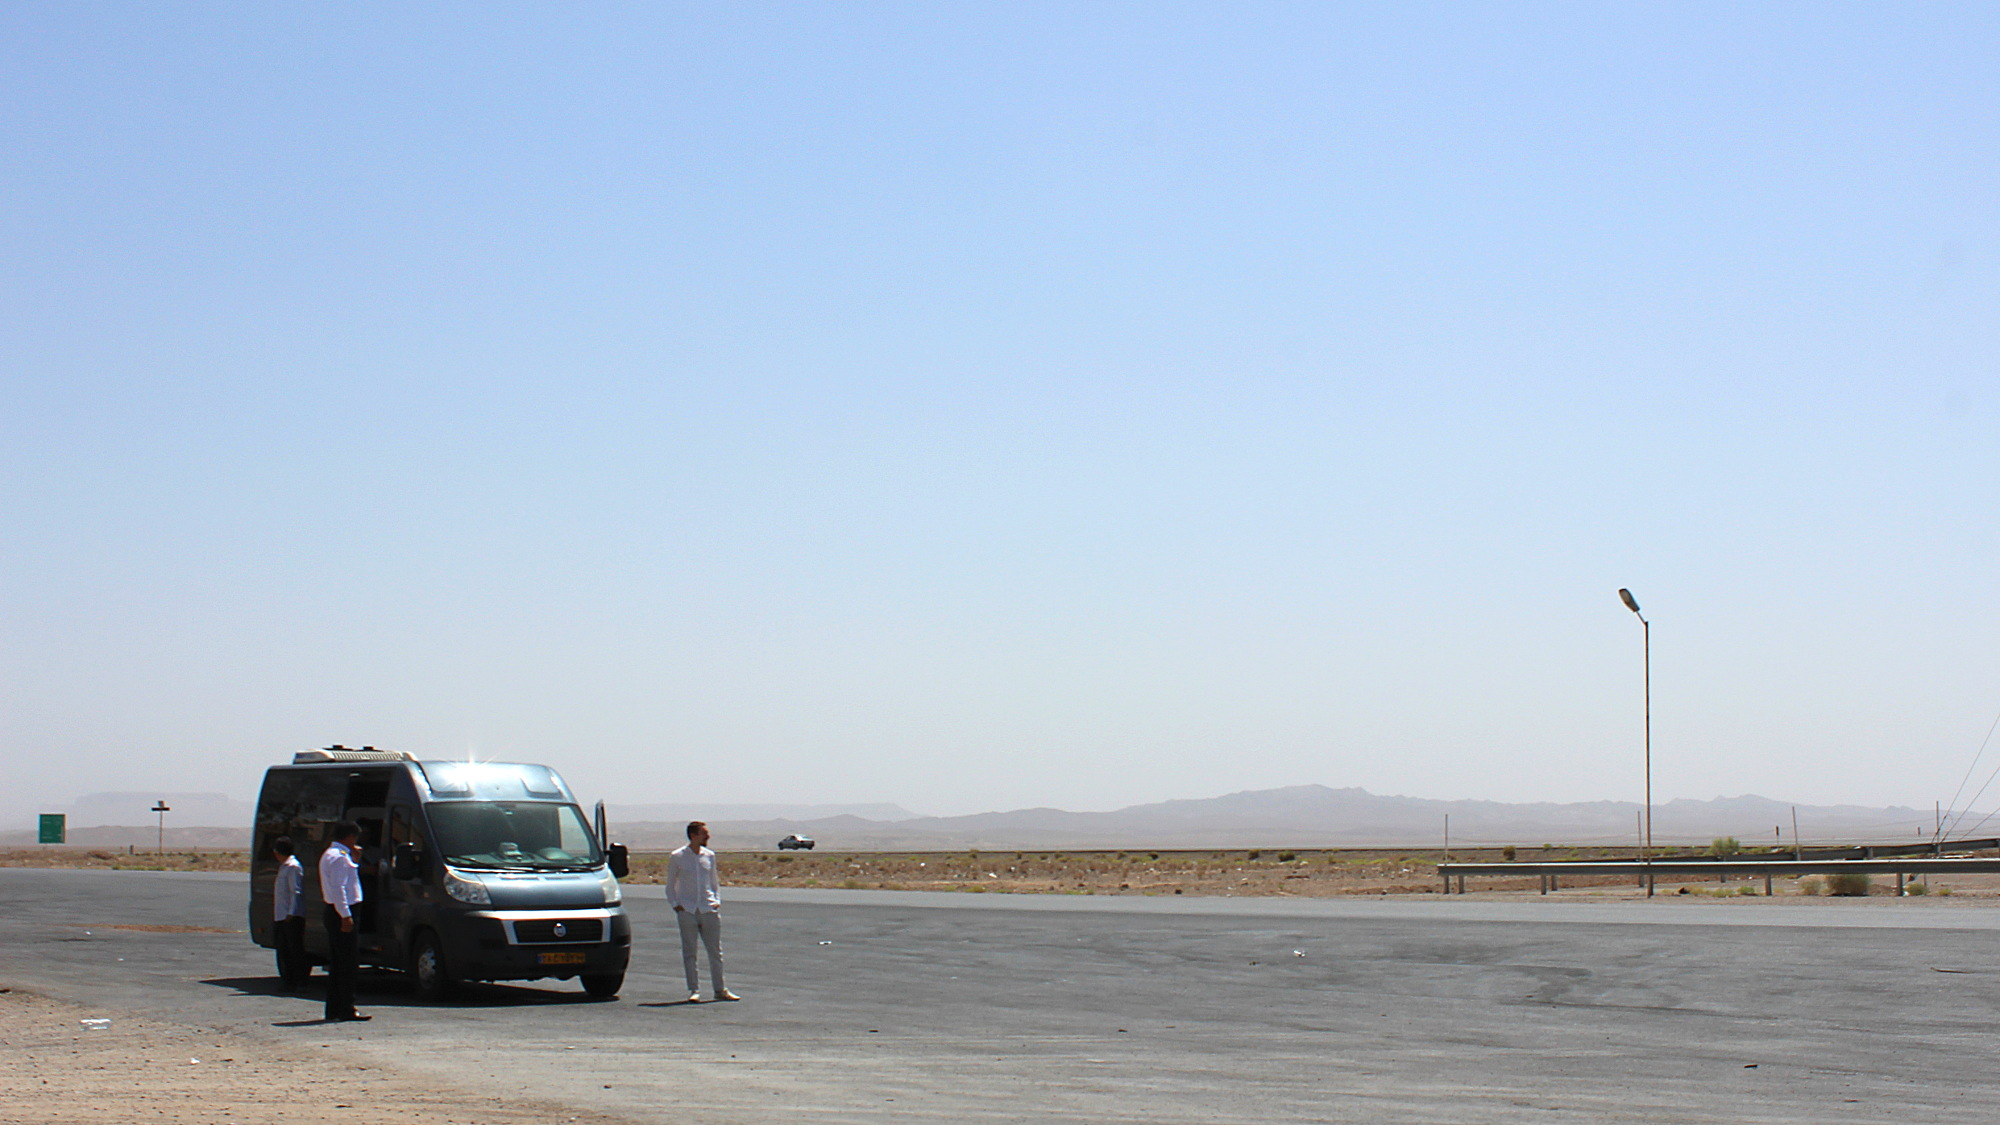 A grey minibus at the side of the road on a desert during a guided tour of Iran.